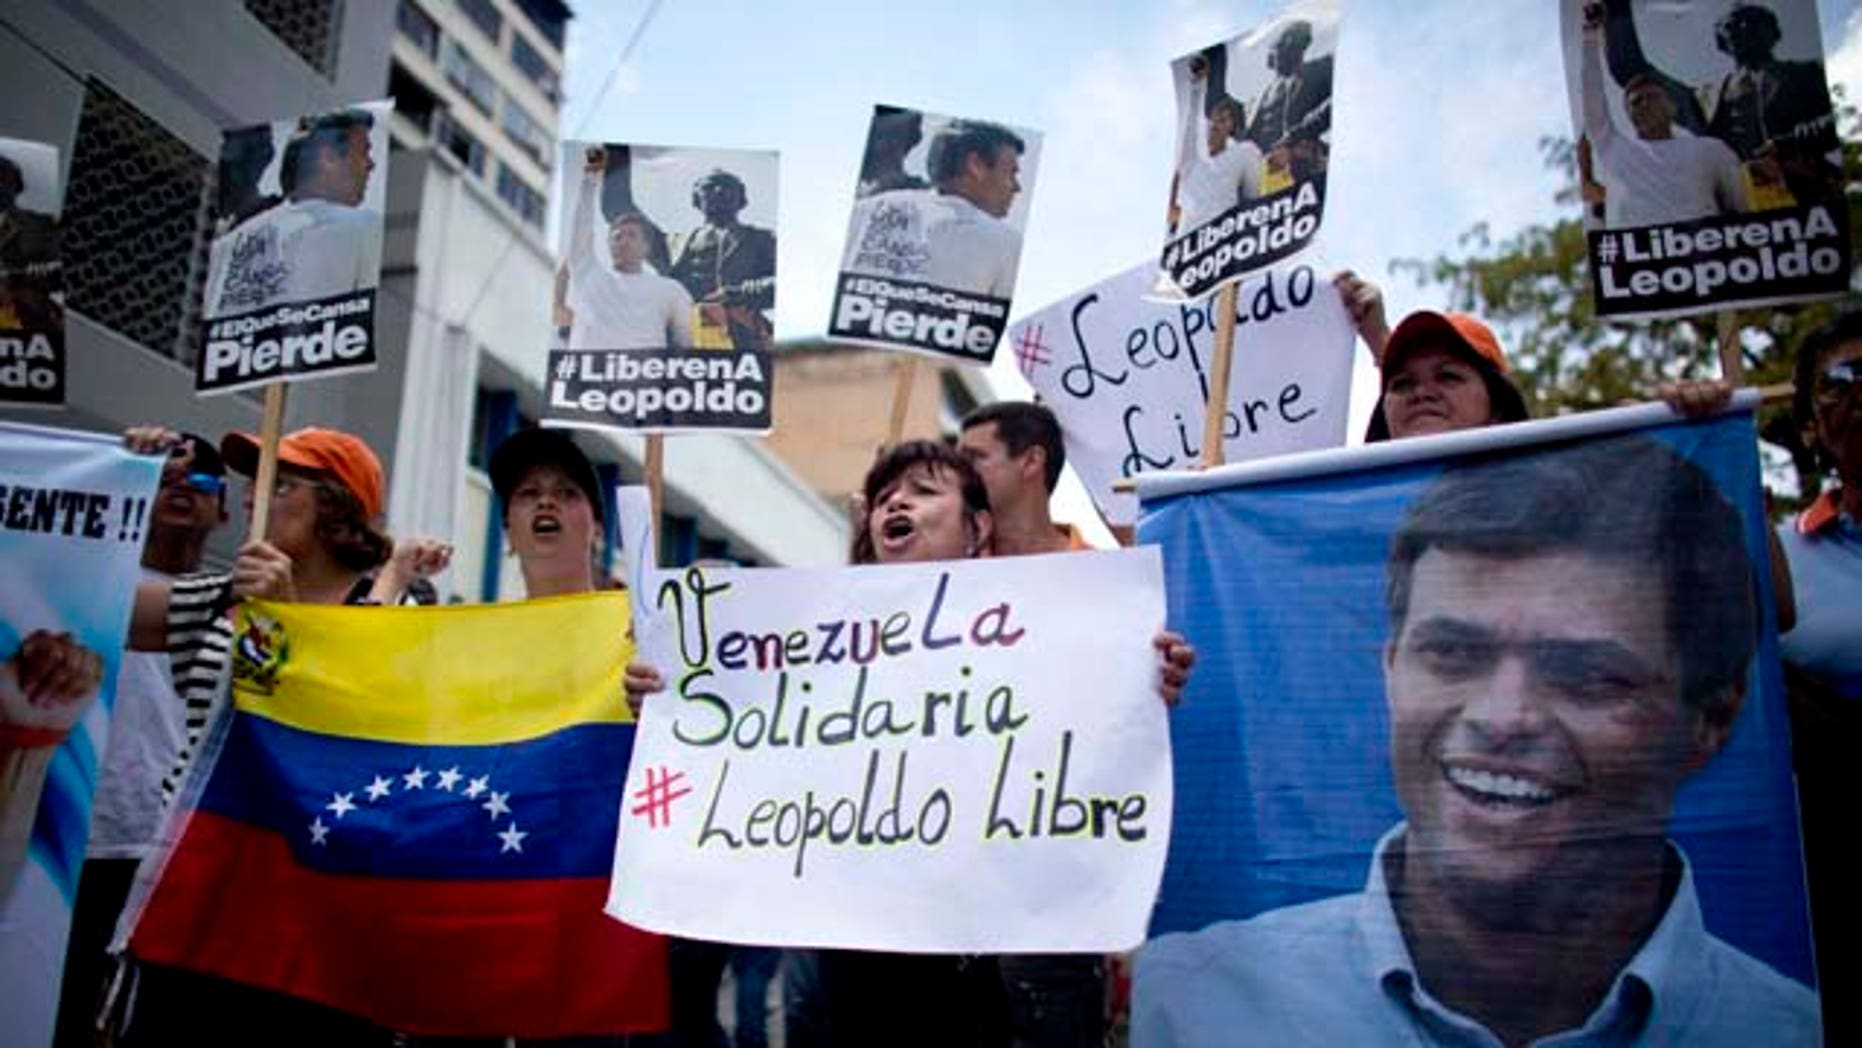 Sept. 10, 2015: People chant slogans in support of jailed opposition leader Leopoldo Lopez, outside the courthouse in Caracas, Venezuela. (AP Photo/Ariana Cubillos)